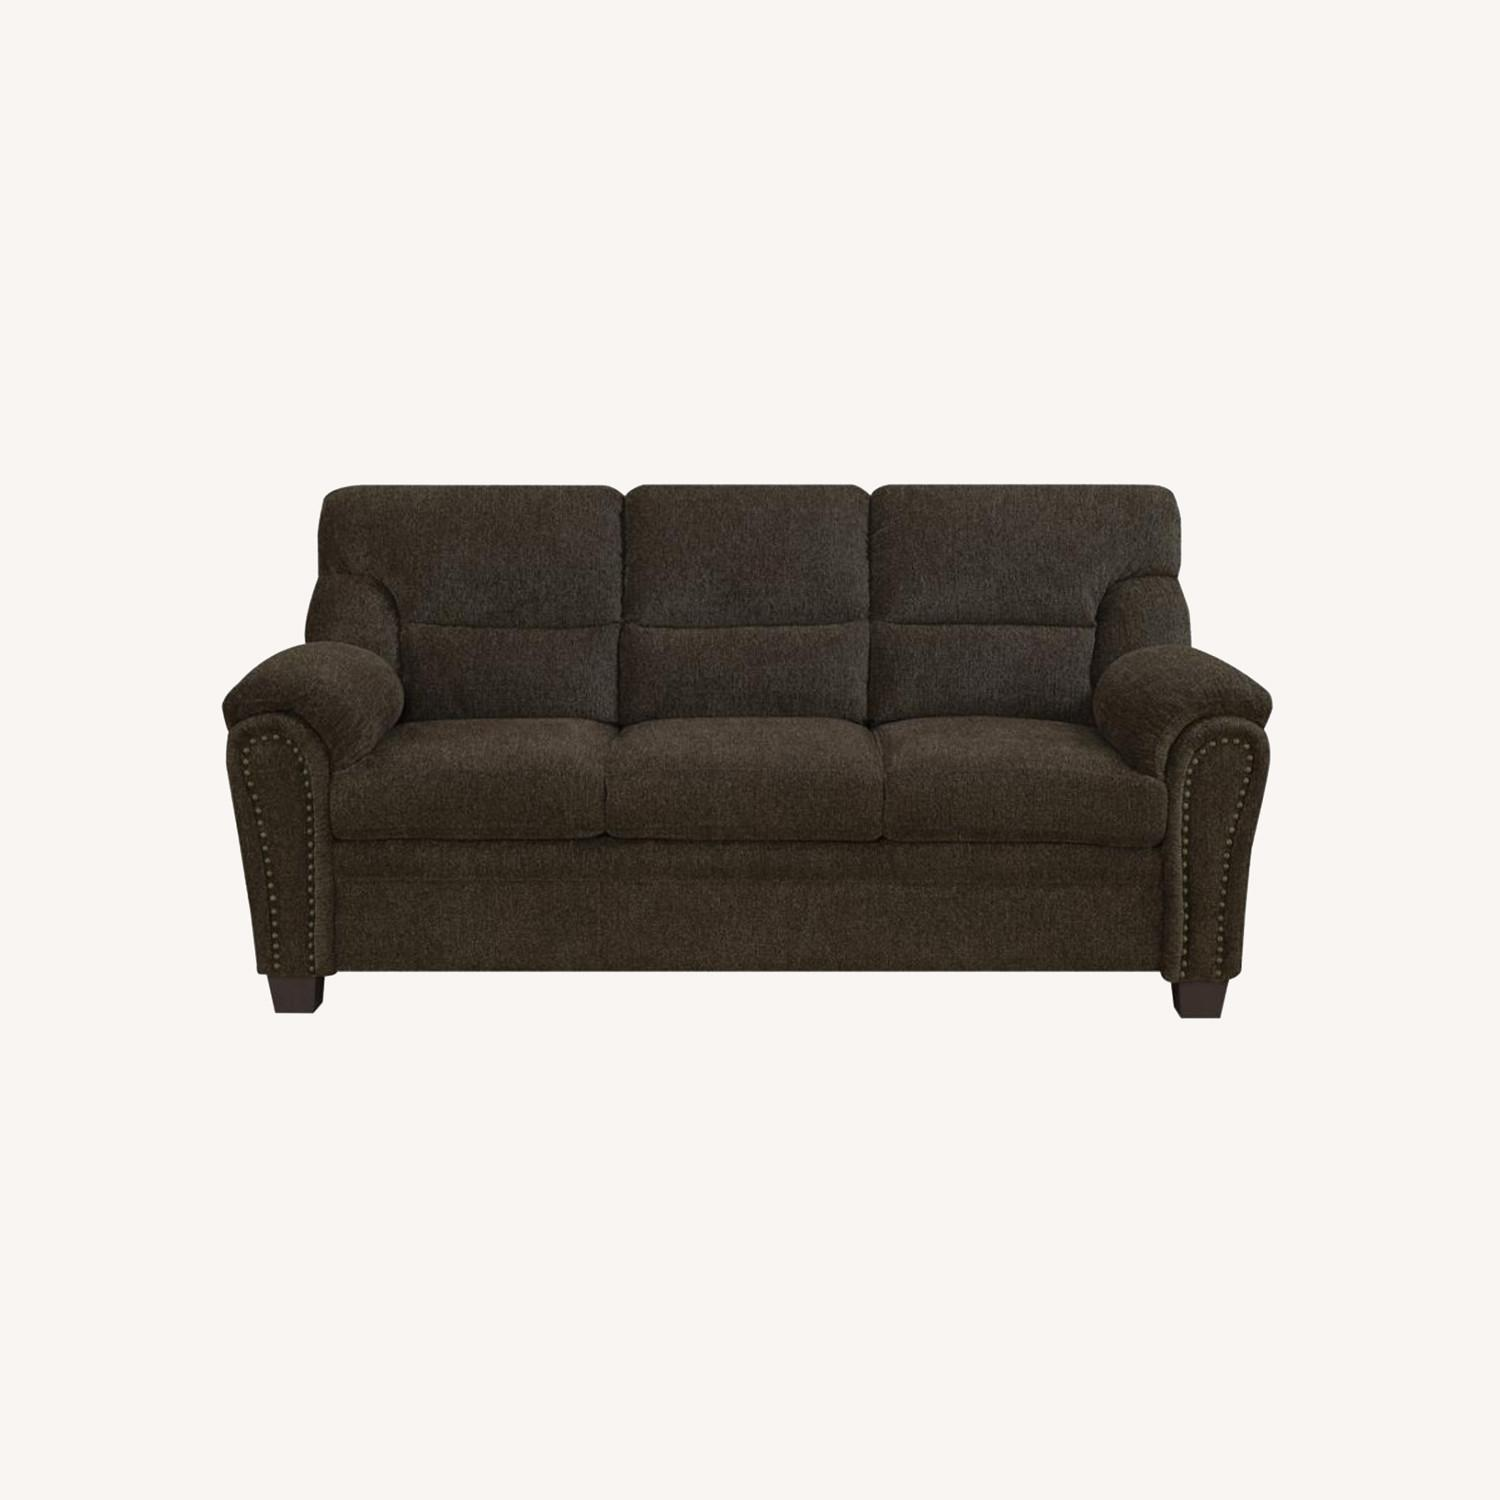 Sofa In Brown Chenille Upholstery Finish - image-7